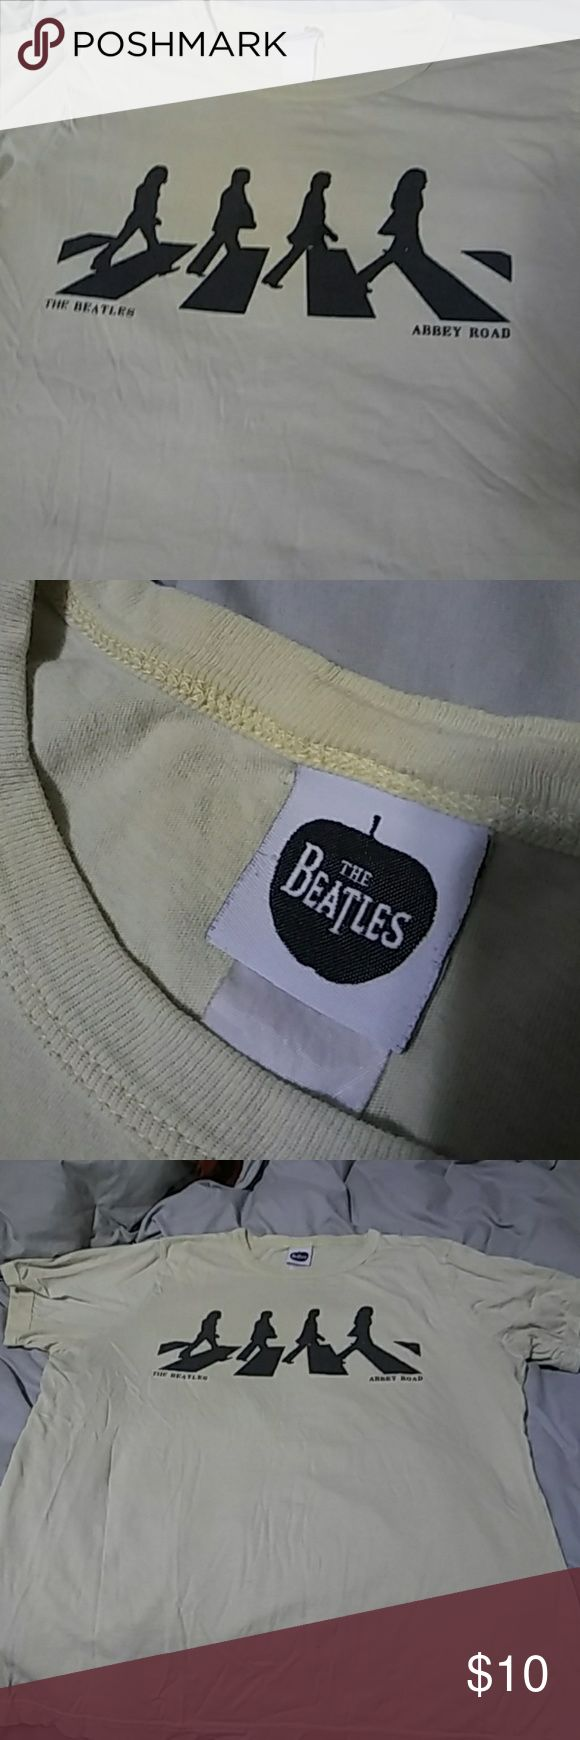 🎡THE BEATLES BAND T SHIRT🎡 Its vintage, so hard to find. Lol and a cute yellow pastel color... So buy this lol  Tags: band t shirts, the beatles, 90's Tops Tees - Short Sleeve